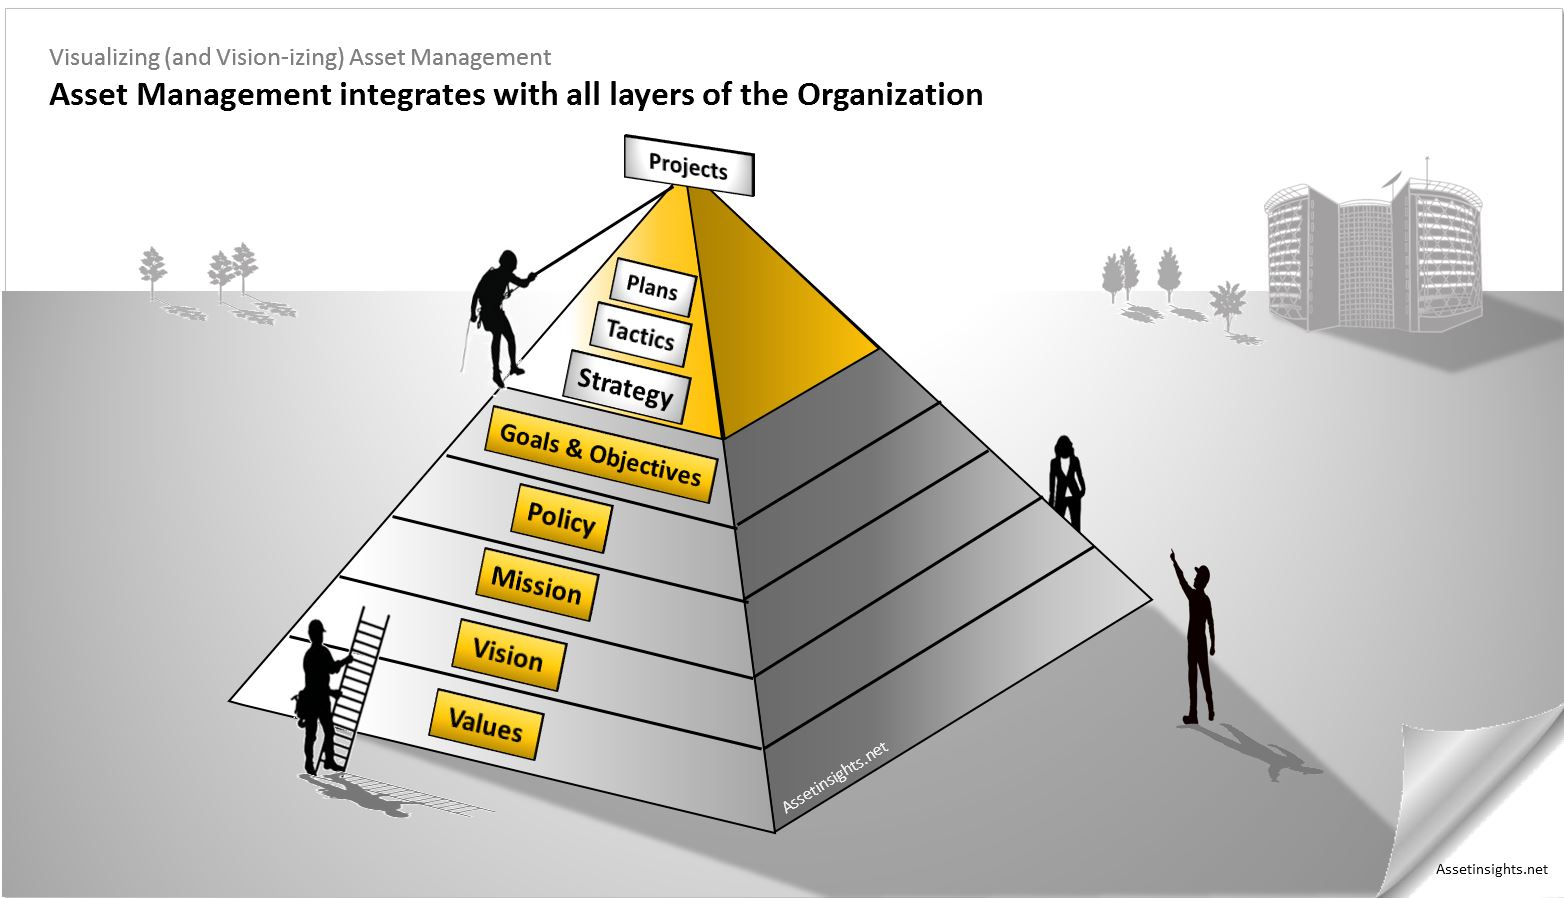 The aspirational-inspirational hierarchy of organizations with plans represented as one of the layers